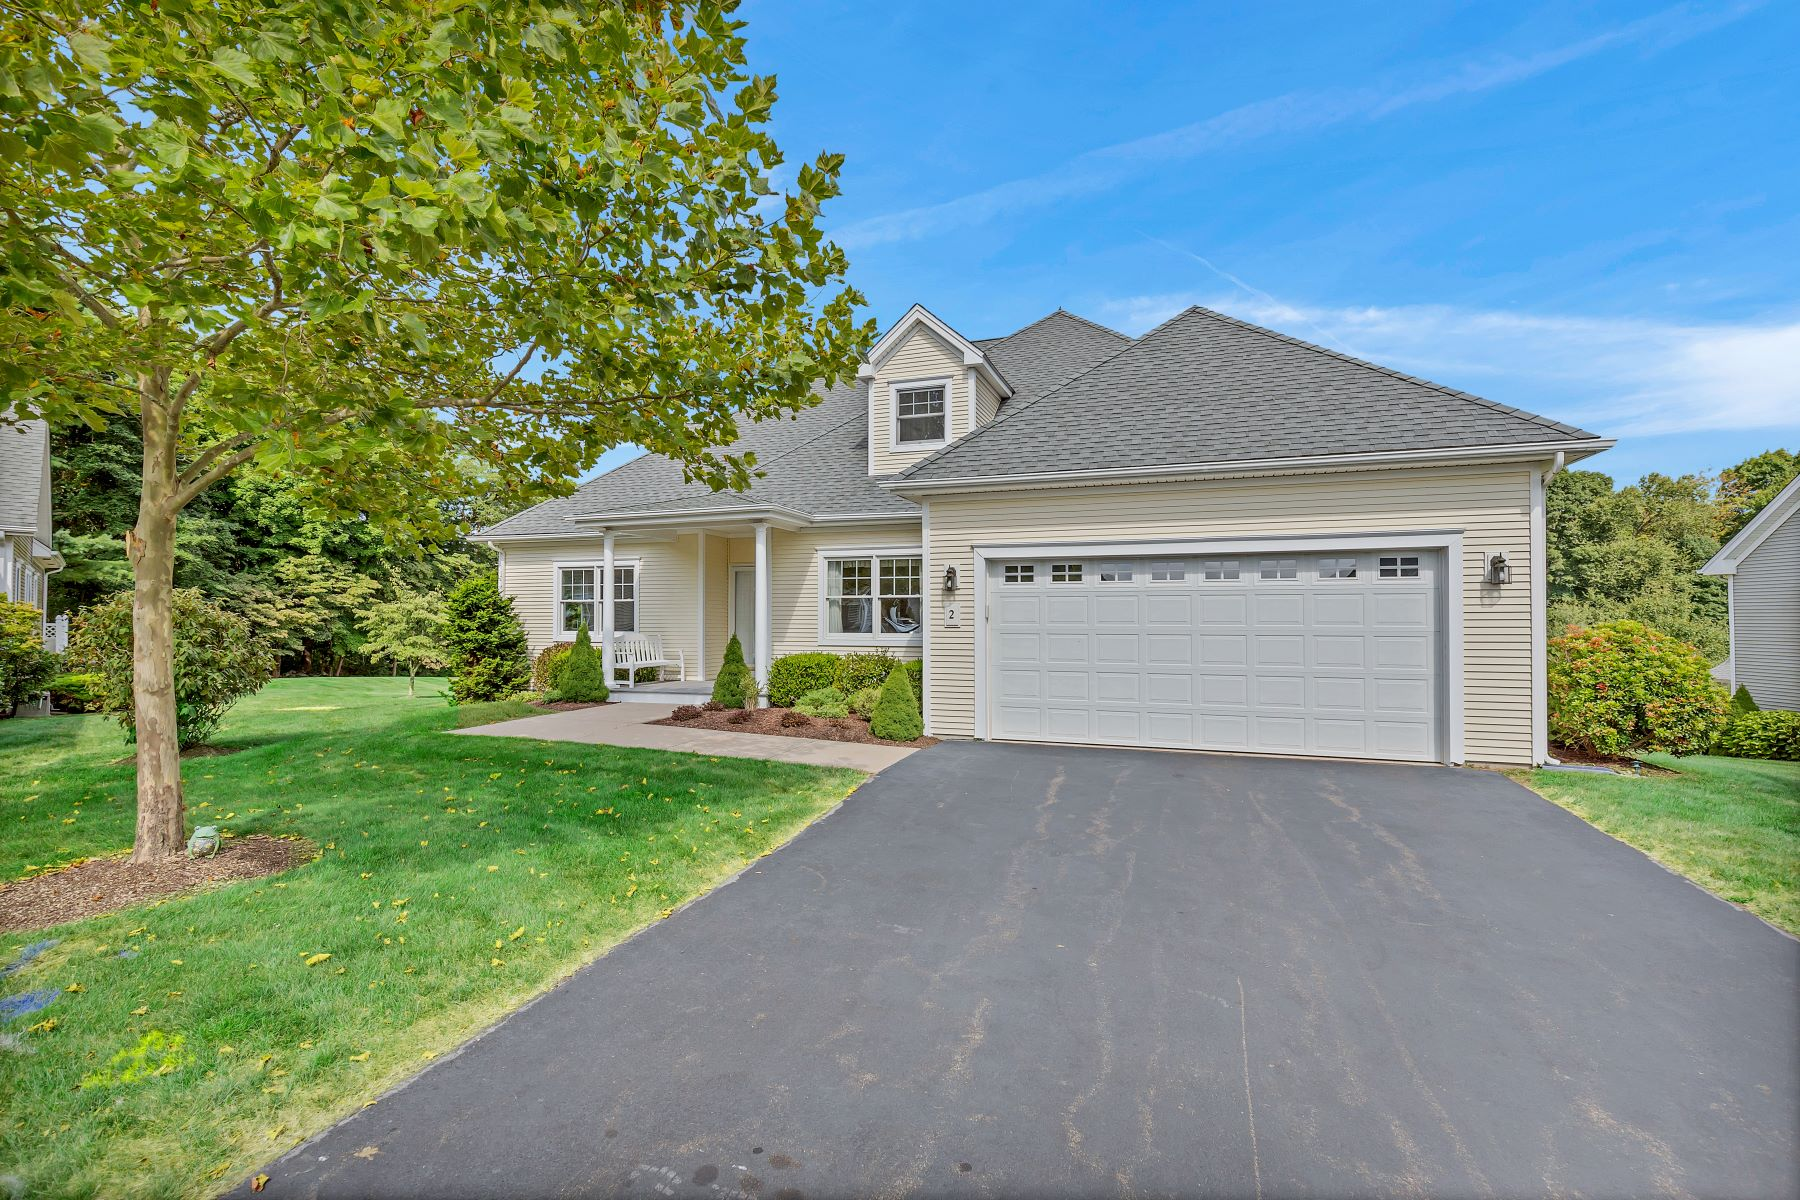 Single Family Homes for Sale at Beautiful Stand Alone Home in Hill Farm 55+ Complex 2 Barn Way 2 Westbrook, Connecticut 06498 United States